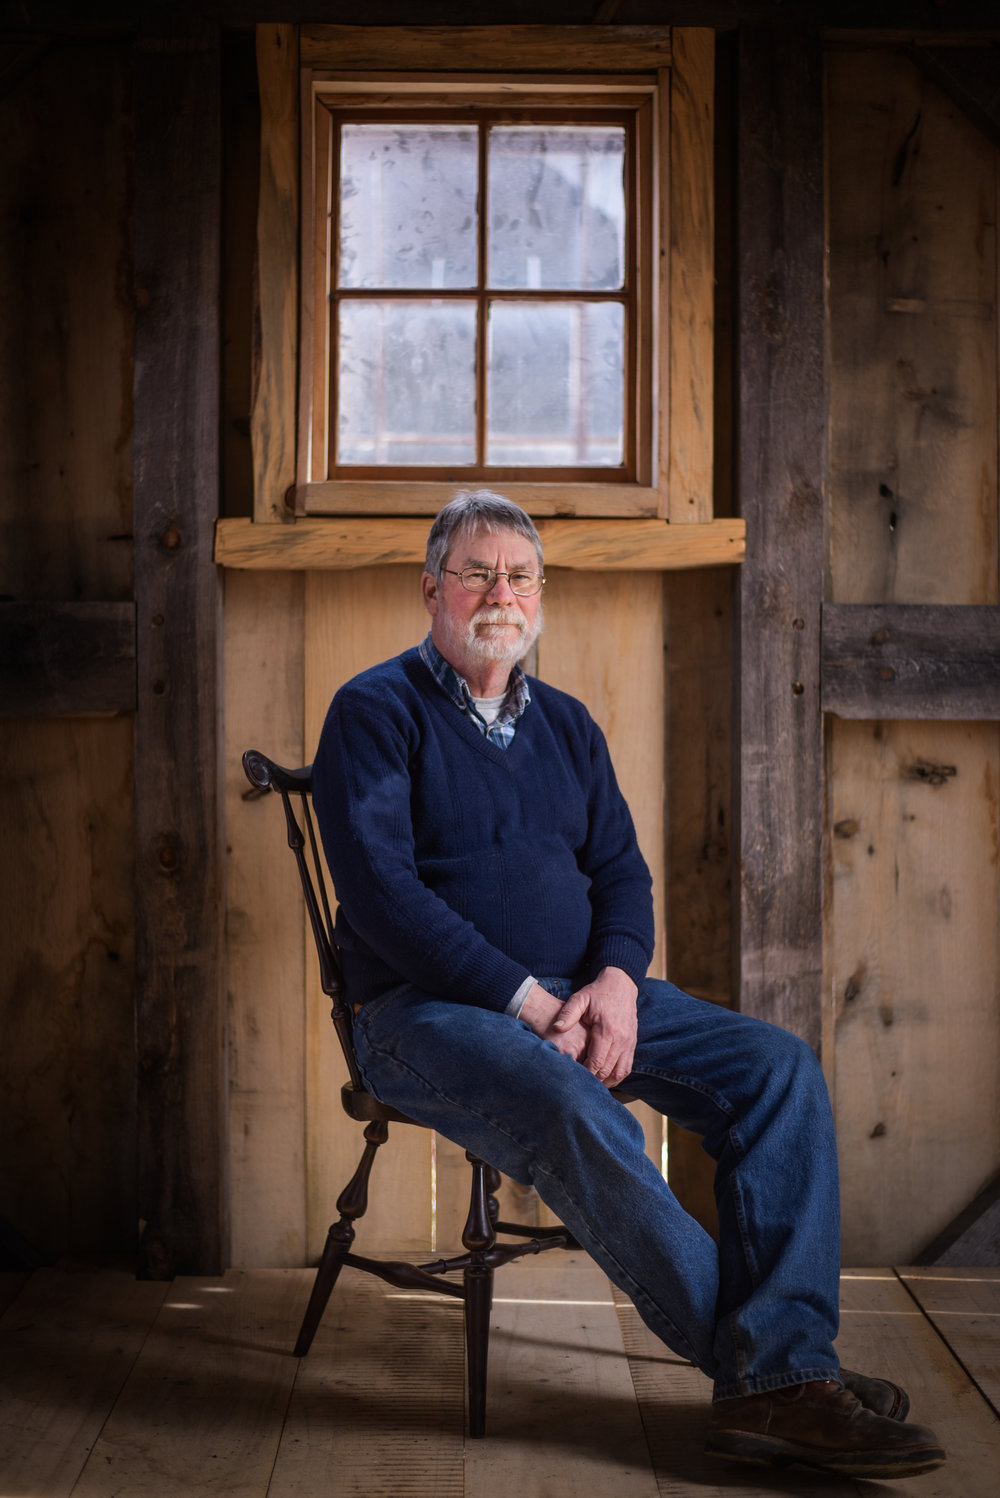 Instructor Jim Crammond in his timber framed work space.